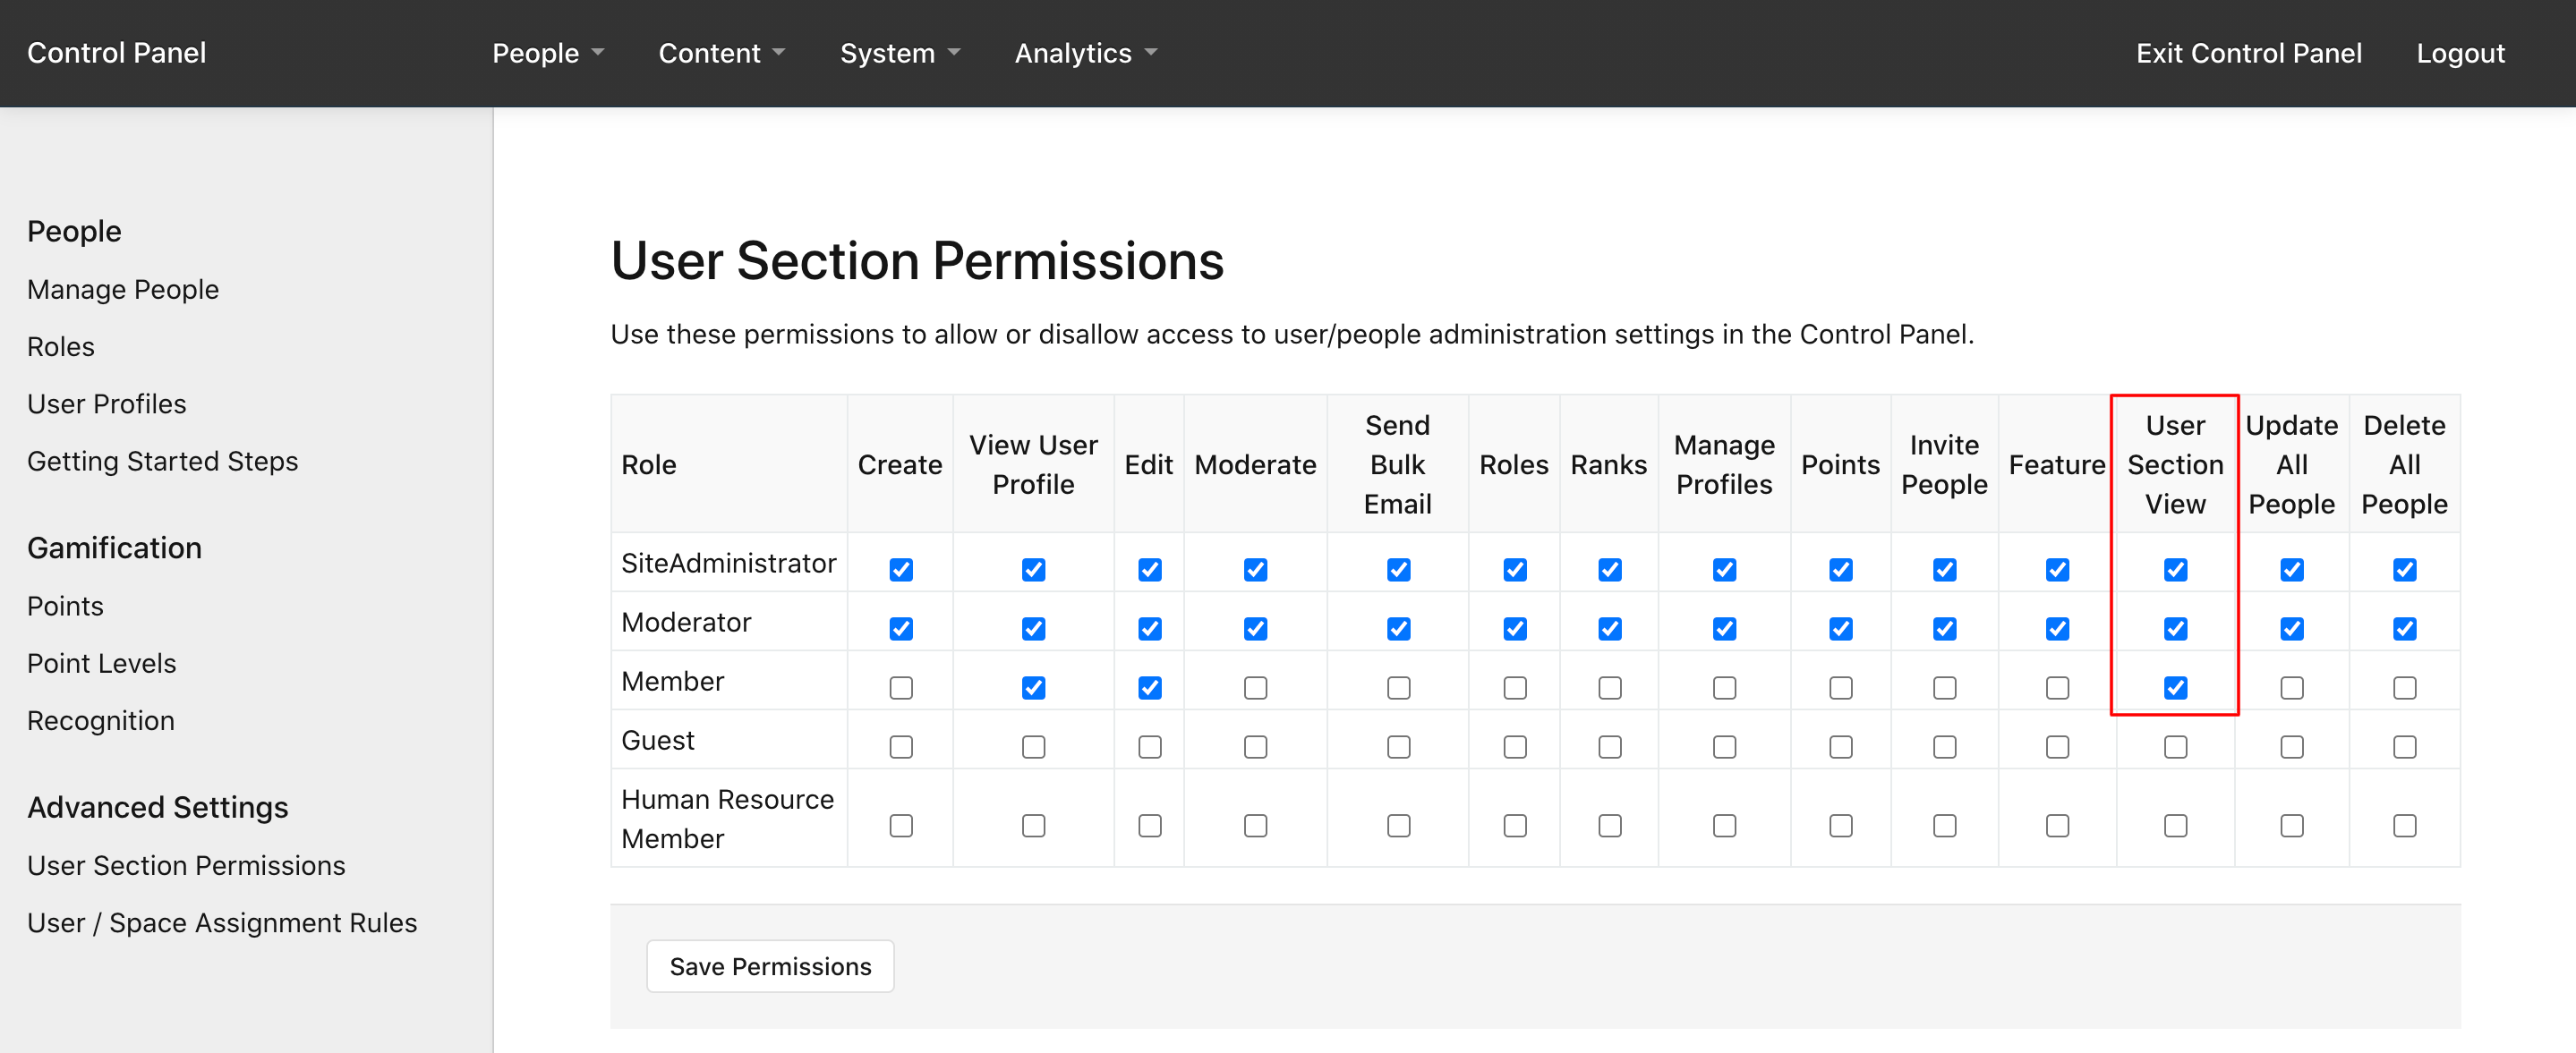 The User Section View permission